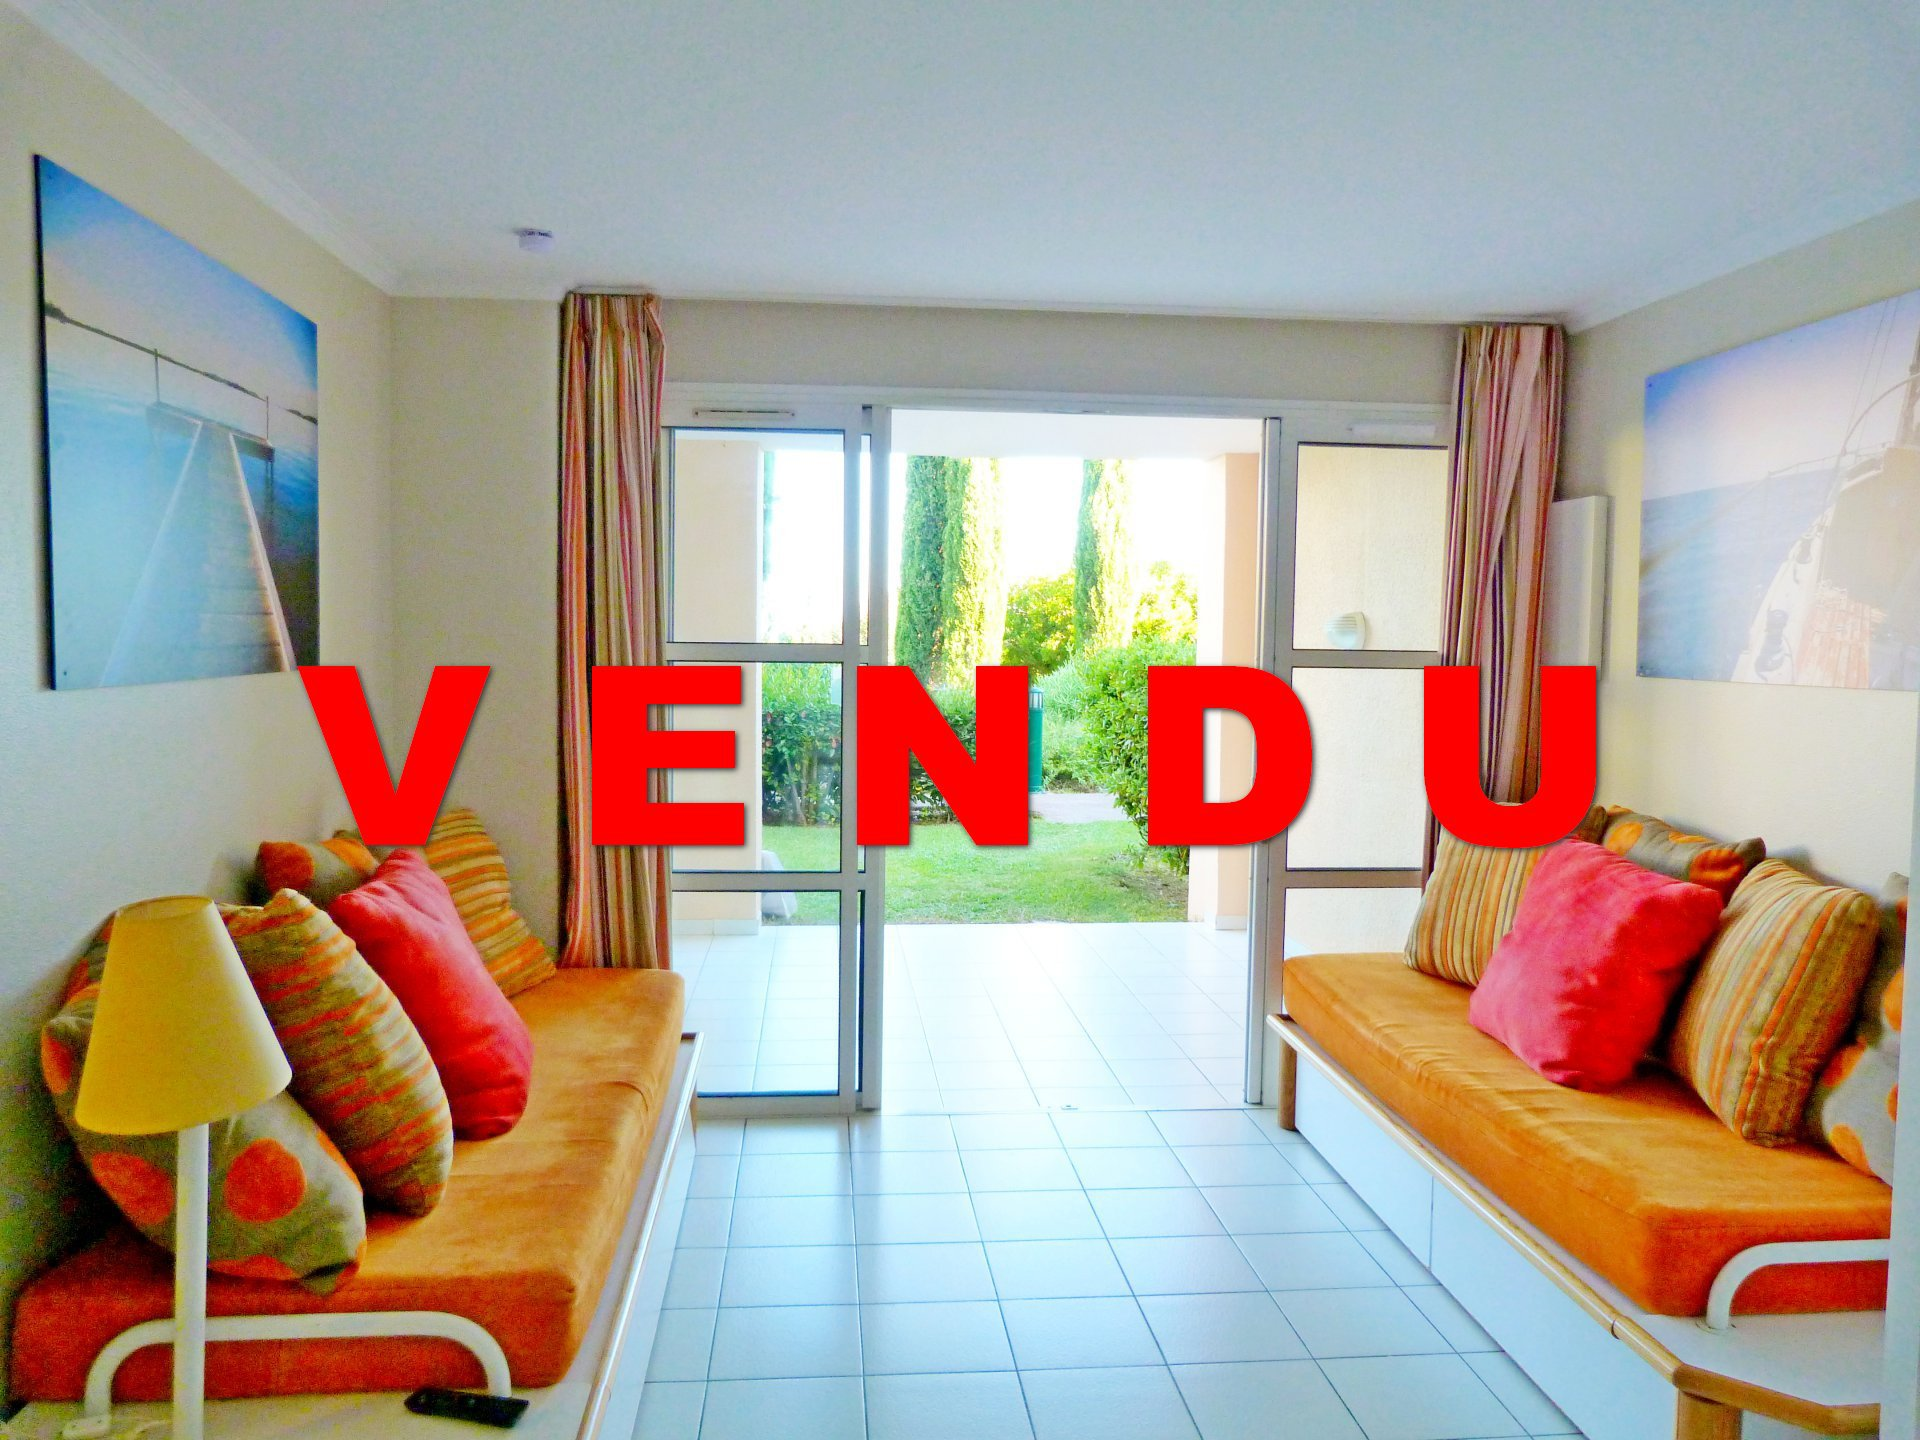 ApartmentFloor Garden level, View Sea, Position south, General condition Good, Kitchen Kitchenette, ...